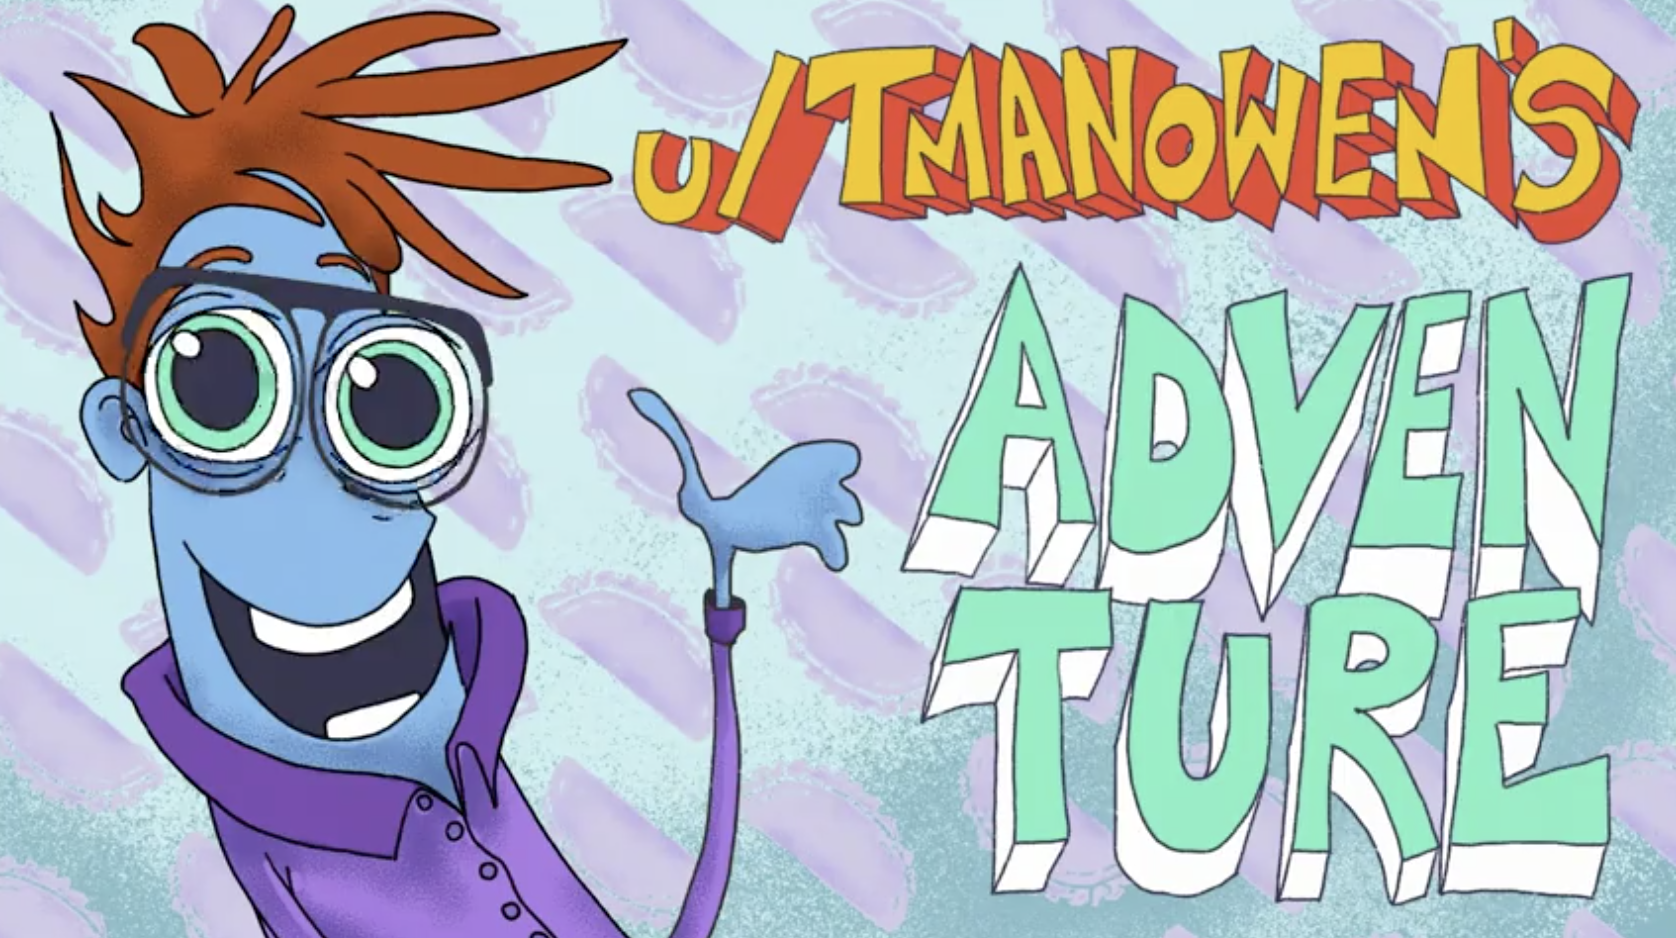 Reddit Users Craft Animated Adventure Short for Taco Bell